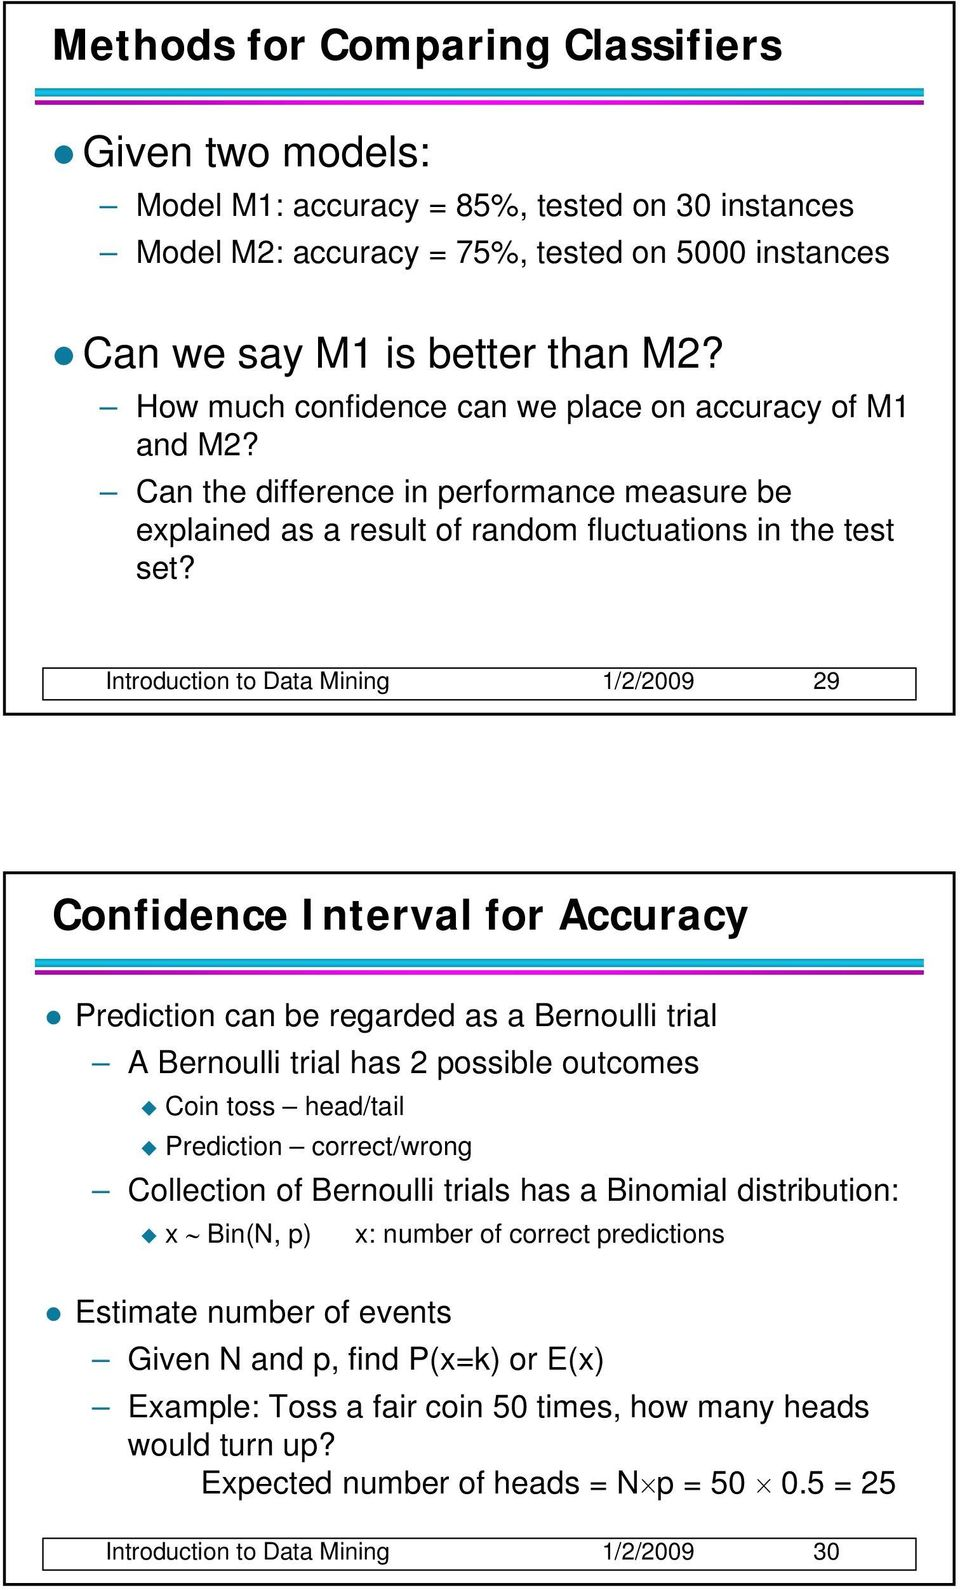 Introduction to Data Mining 1//009 9 Confidence Interval for Accuracy Prediction can be regarded as a Bernoulli trial A Bernoulli trial has possible outcomes Coin toss head/tail Prediction